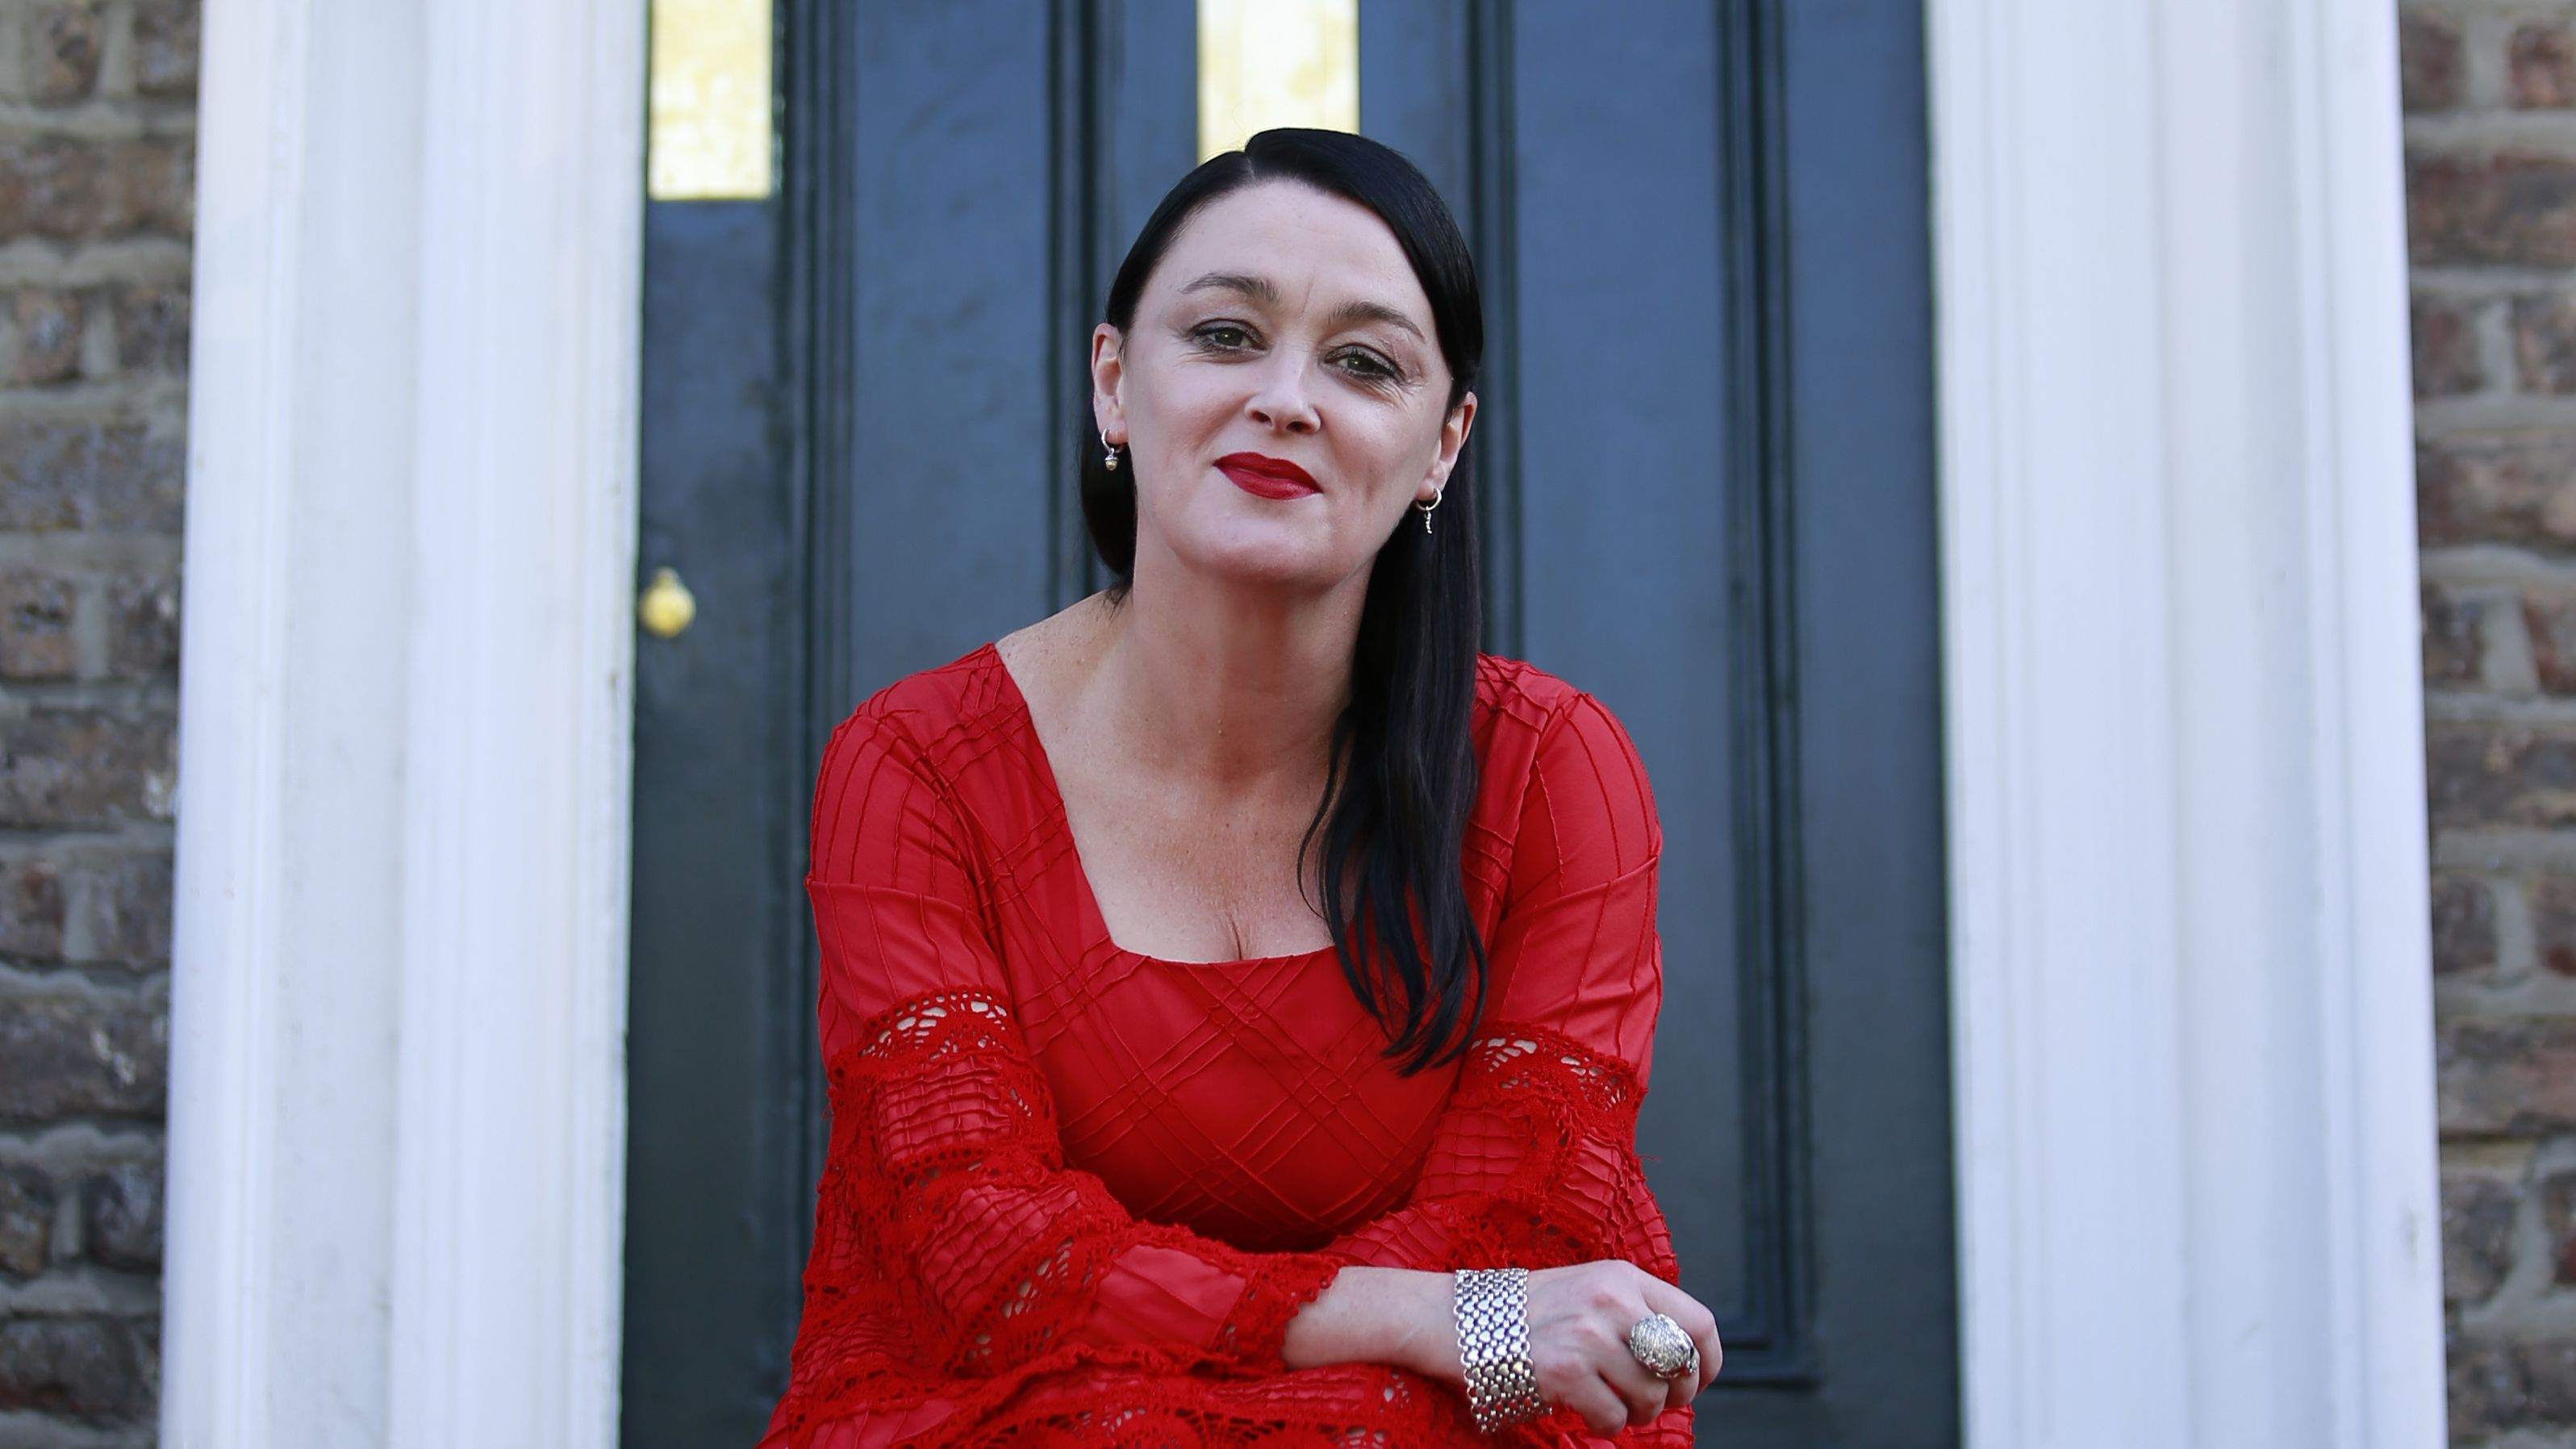 Bronagh Gallagher: 'I never felt I was with the right man. But that's how the dice rolled'